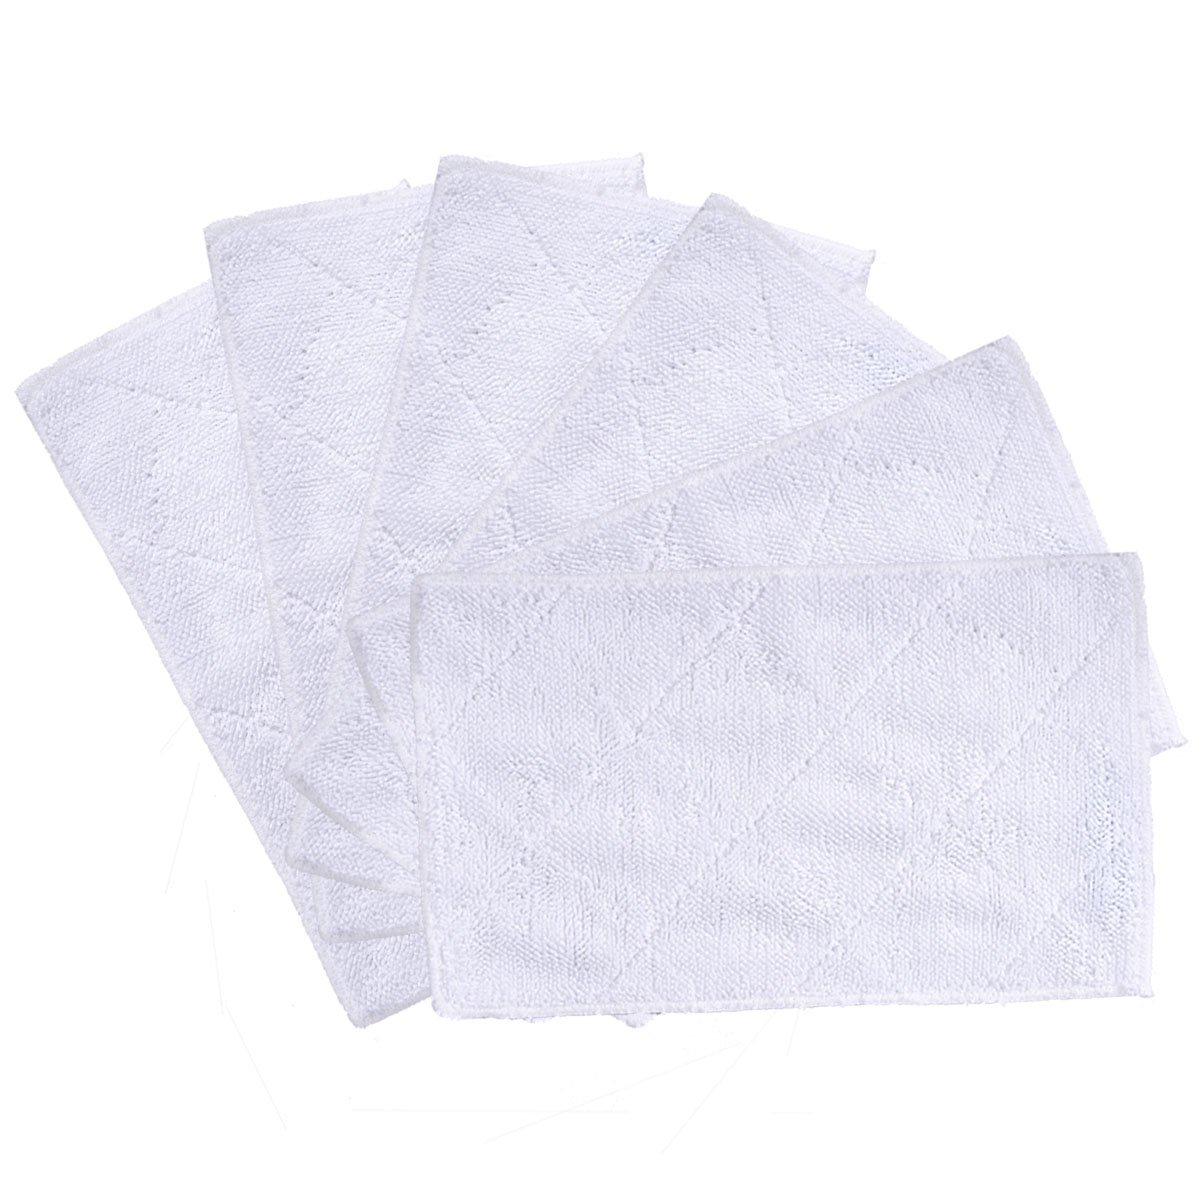 KEEPOW 6 Pack Cleaning Mop Pads for Light 'n' Easy S3101, S7326, S3601 Floor Steam Cleaner